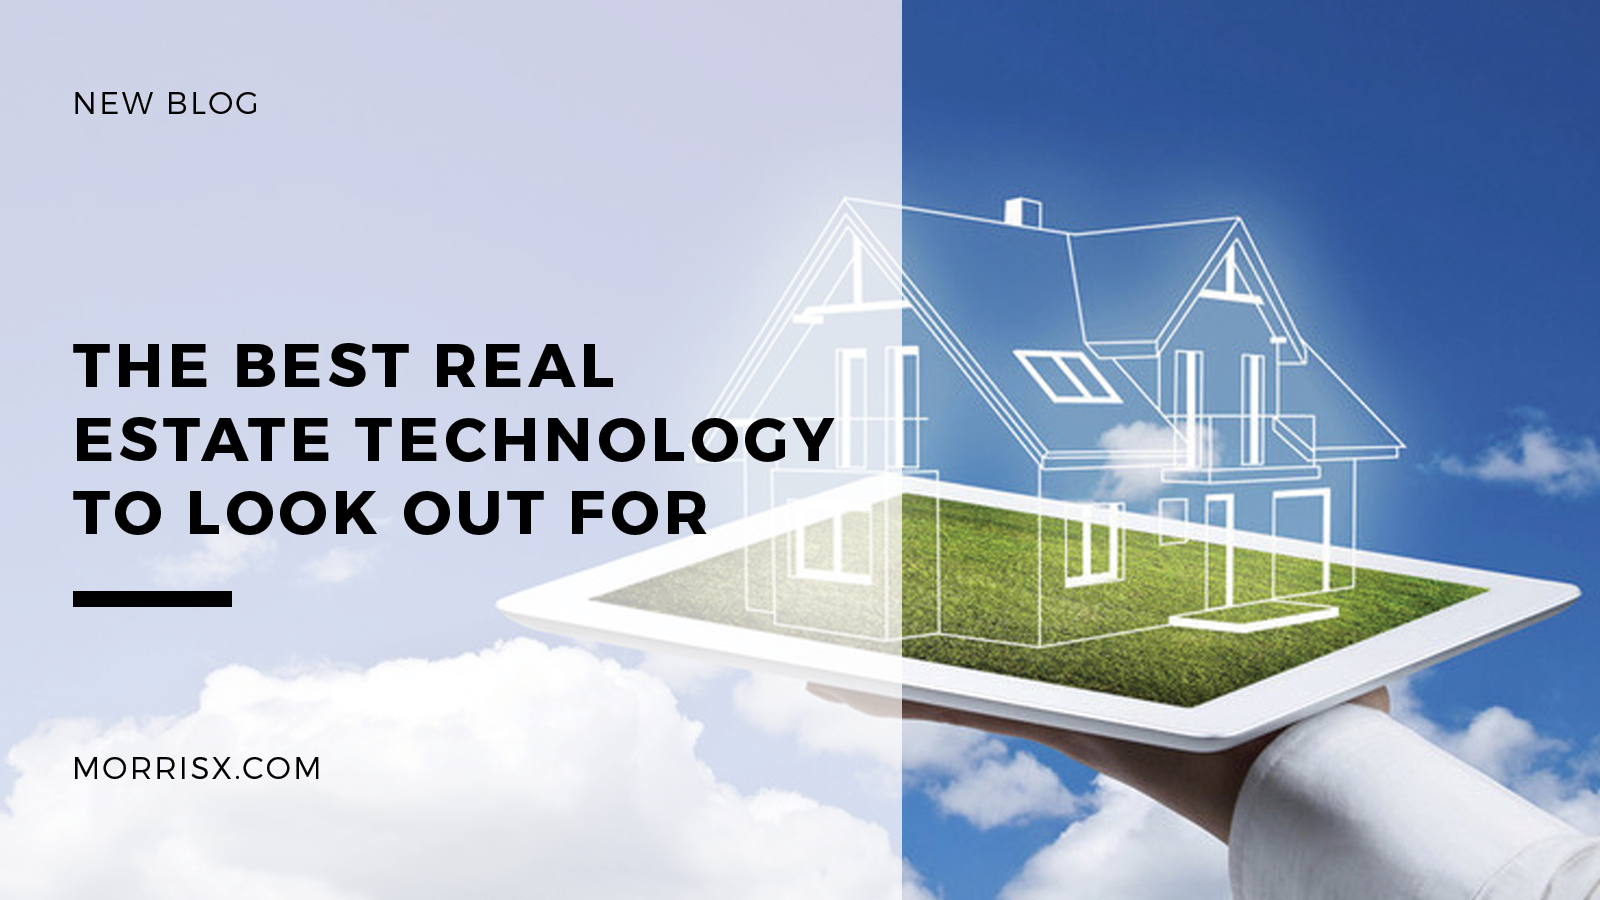 The Best Real Estate Technology To Look Out For